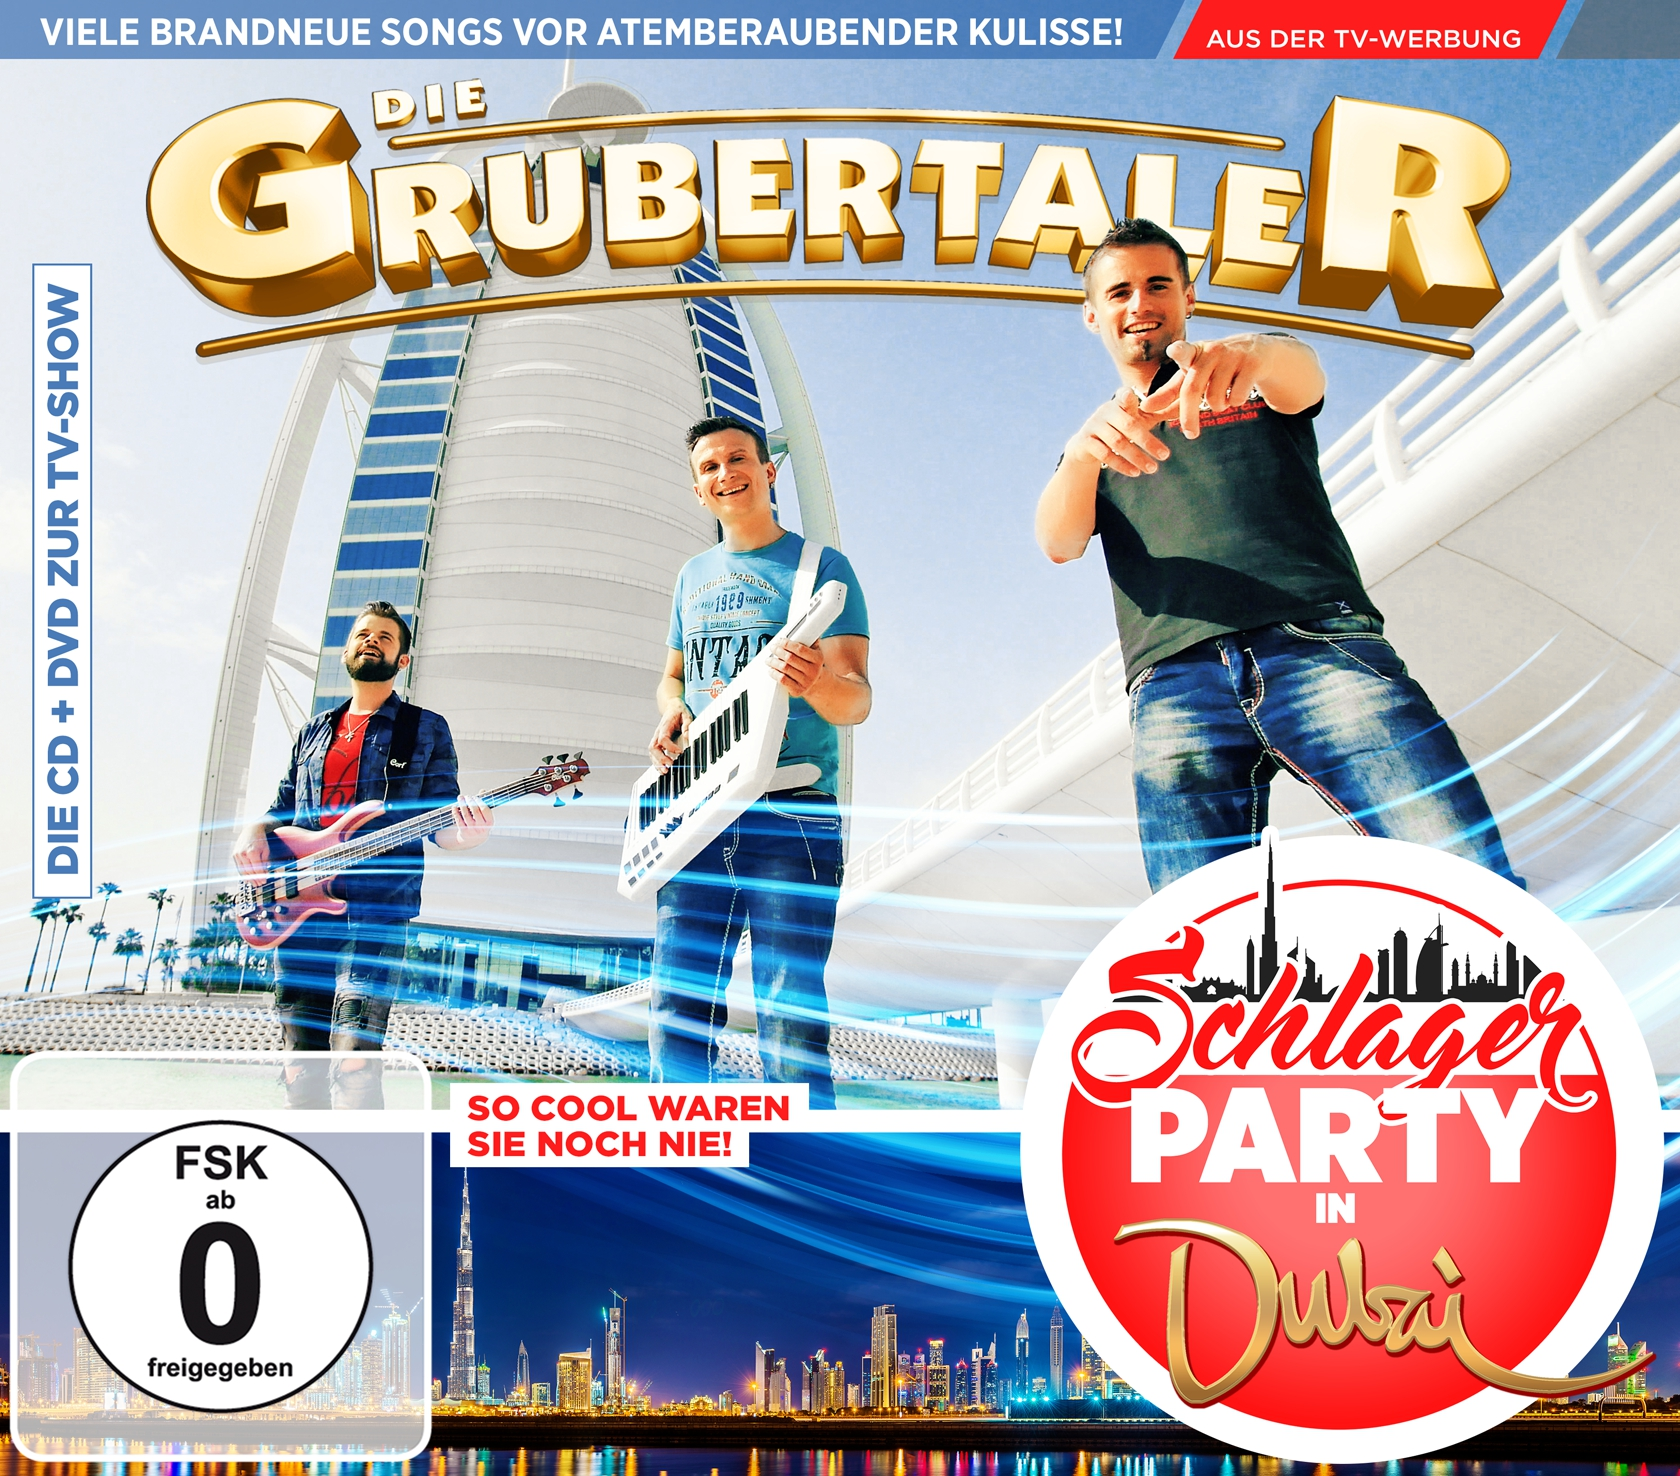 Die Grubertaler - Schlagerparty in Dubai (CD + DVD 2017)